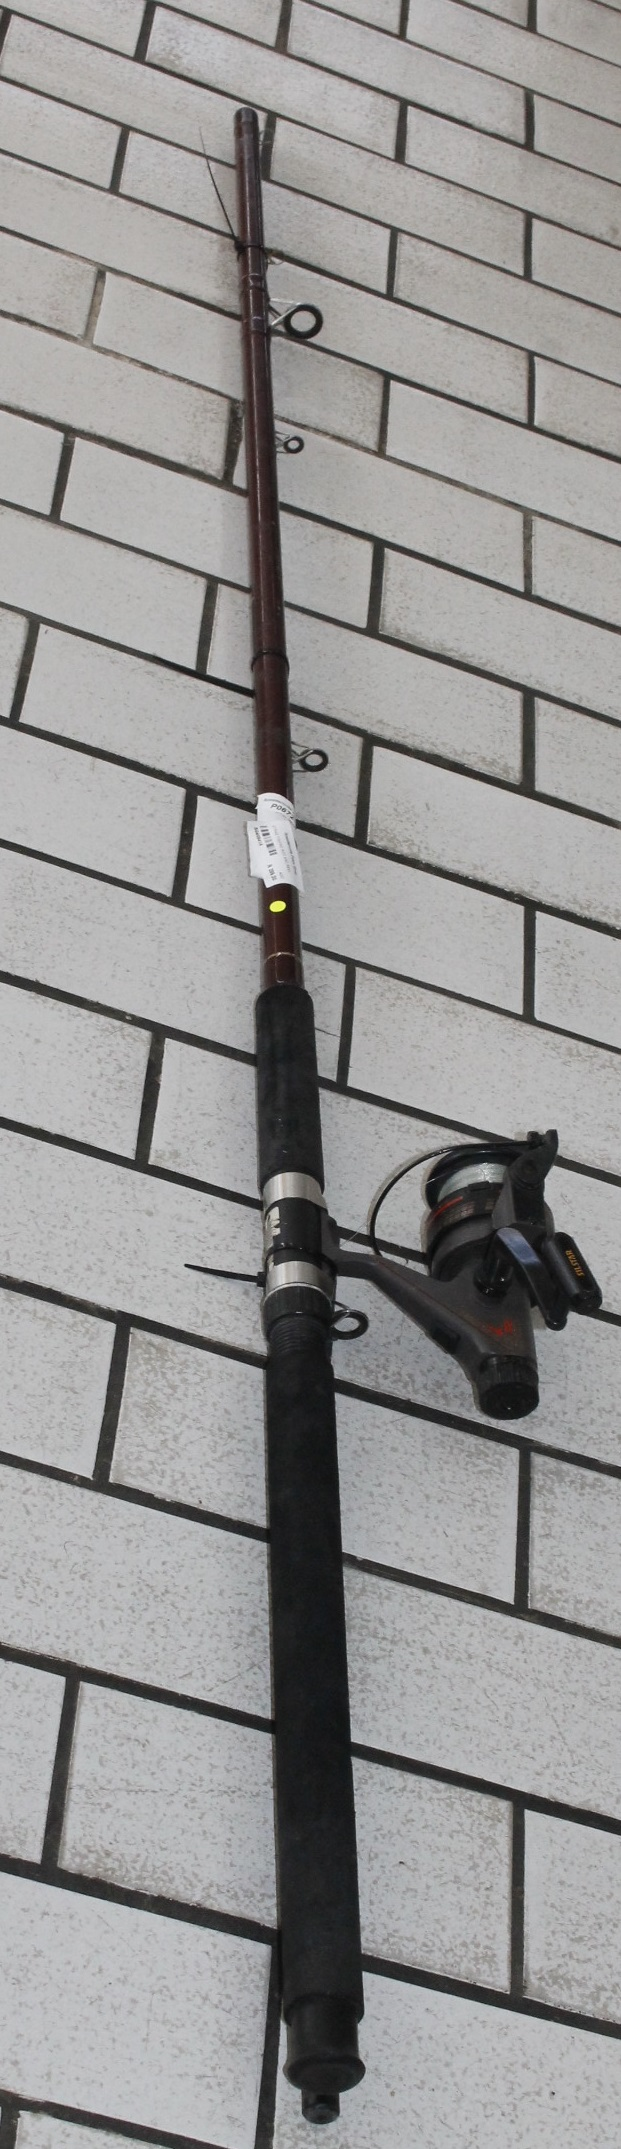 Strike fishing rod and reel S040541A #Rosettenvillepawnshop